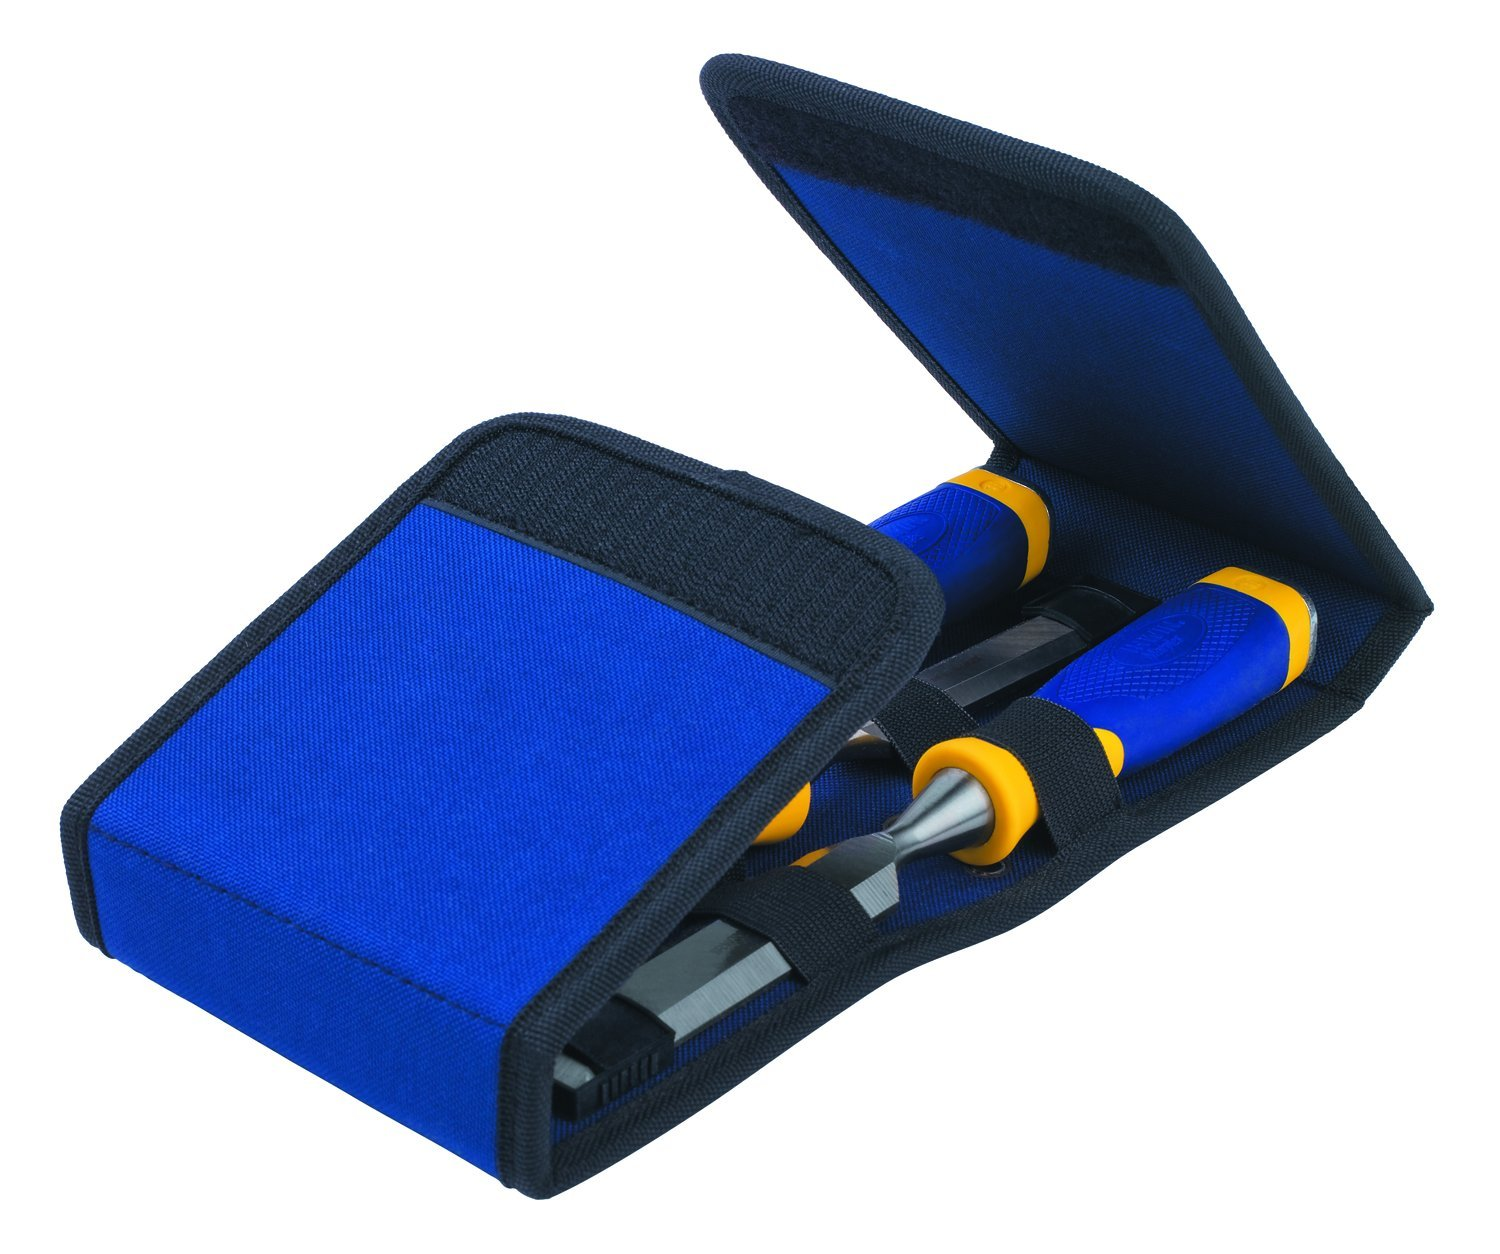 Irwin Tools Marples Construction Chisel Set with Wallet, 3 Piece, 1768781 by Irwin Tools